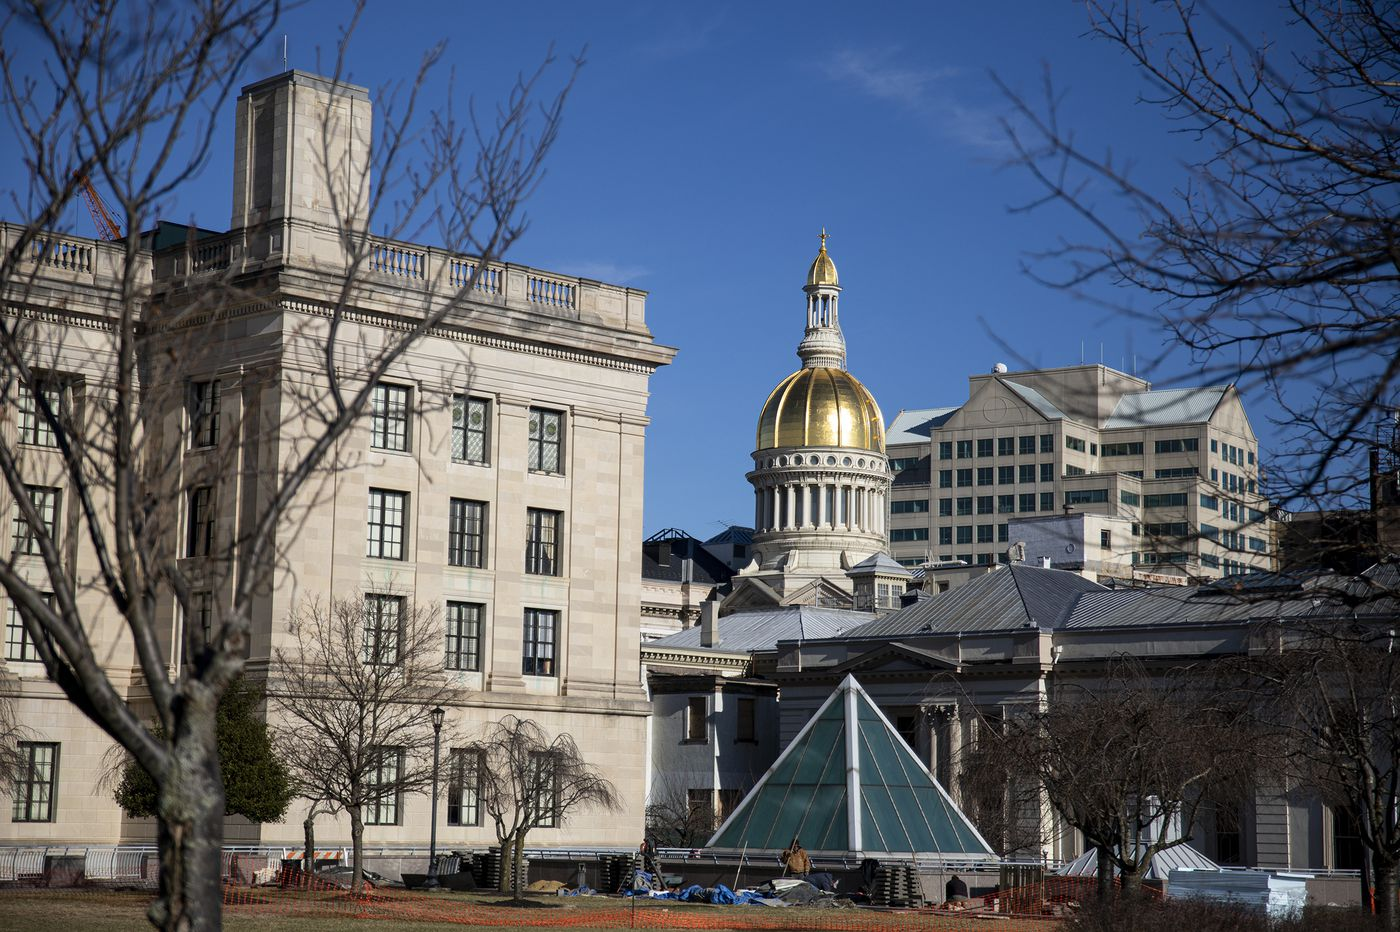 N.J. Senate committee wades into controversial corporate tax breaks, suggesting reforms